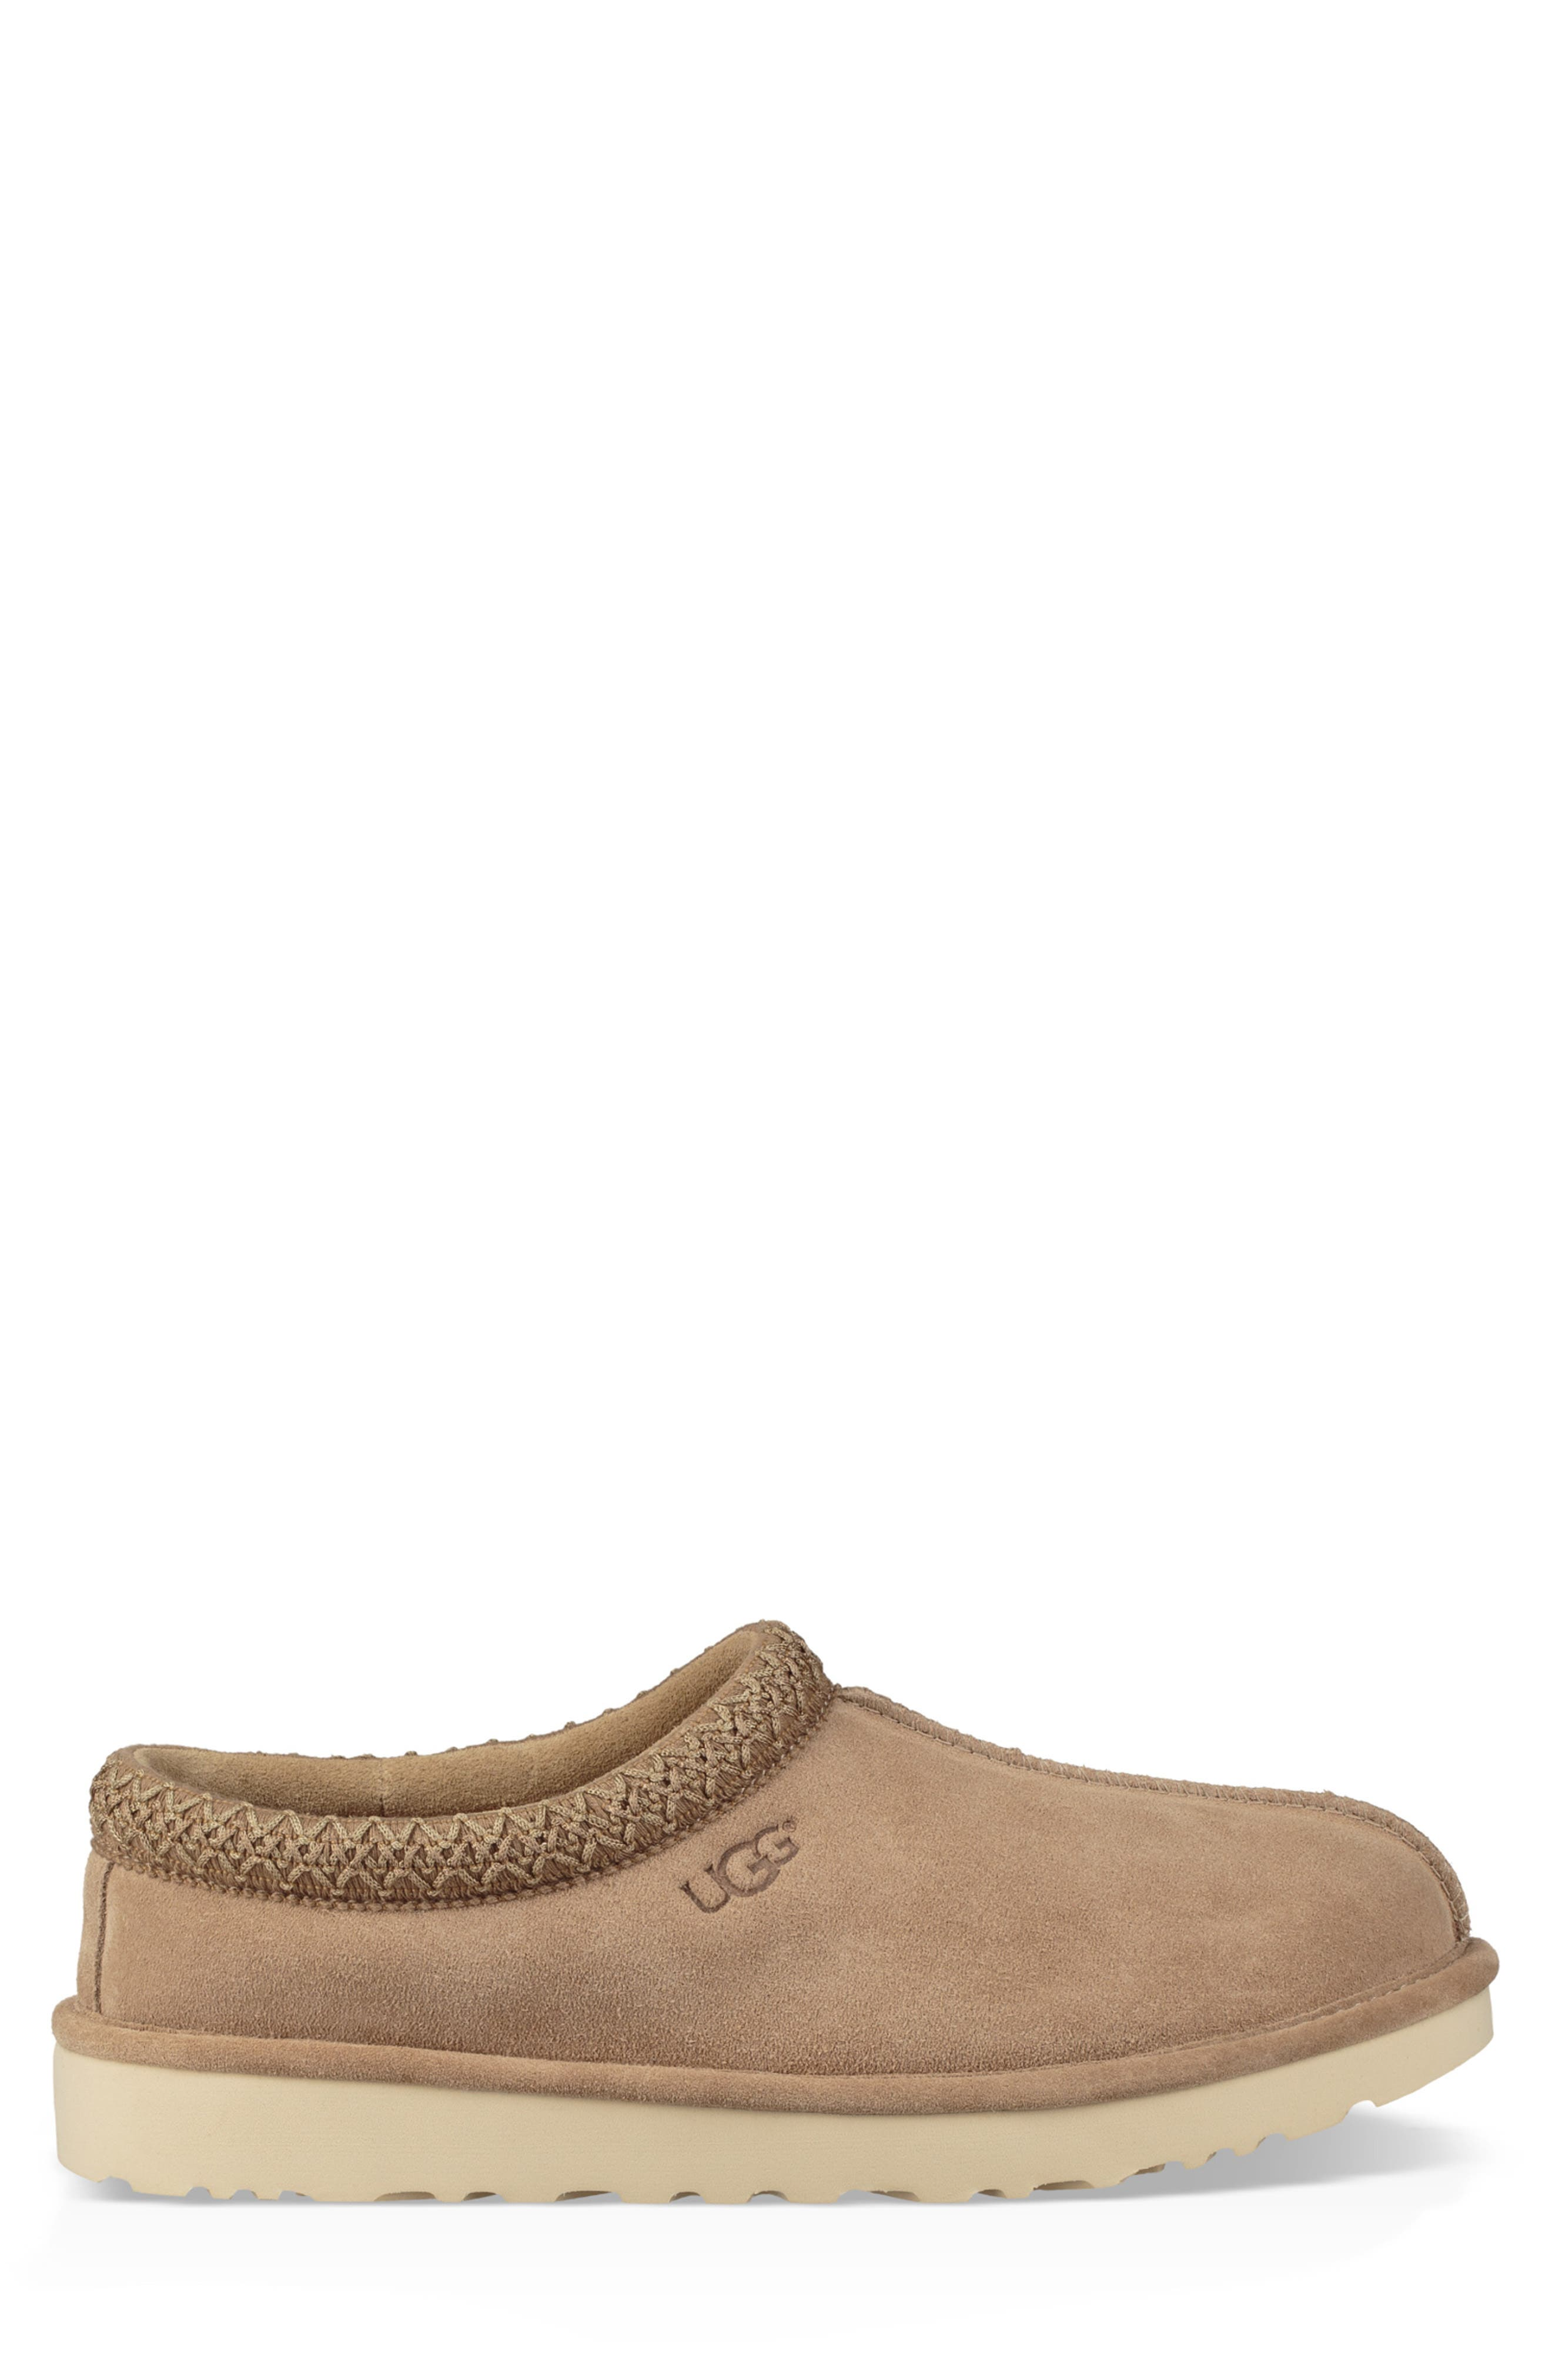 Tasman Pinnacle Indoor/Outdoor Horween Slipper,                             Alternate thumbnail 3, color,                             BEIGE